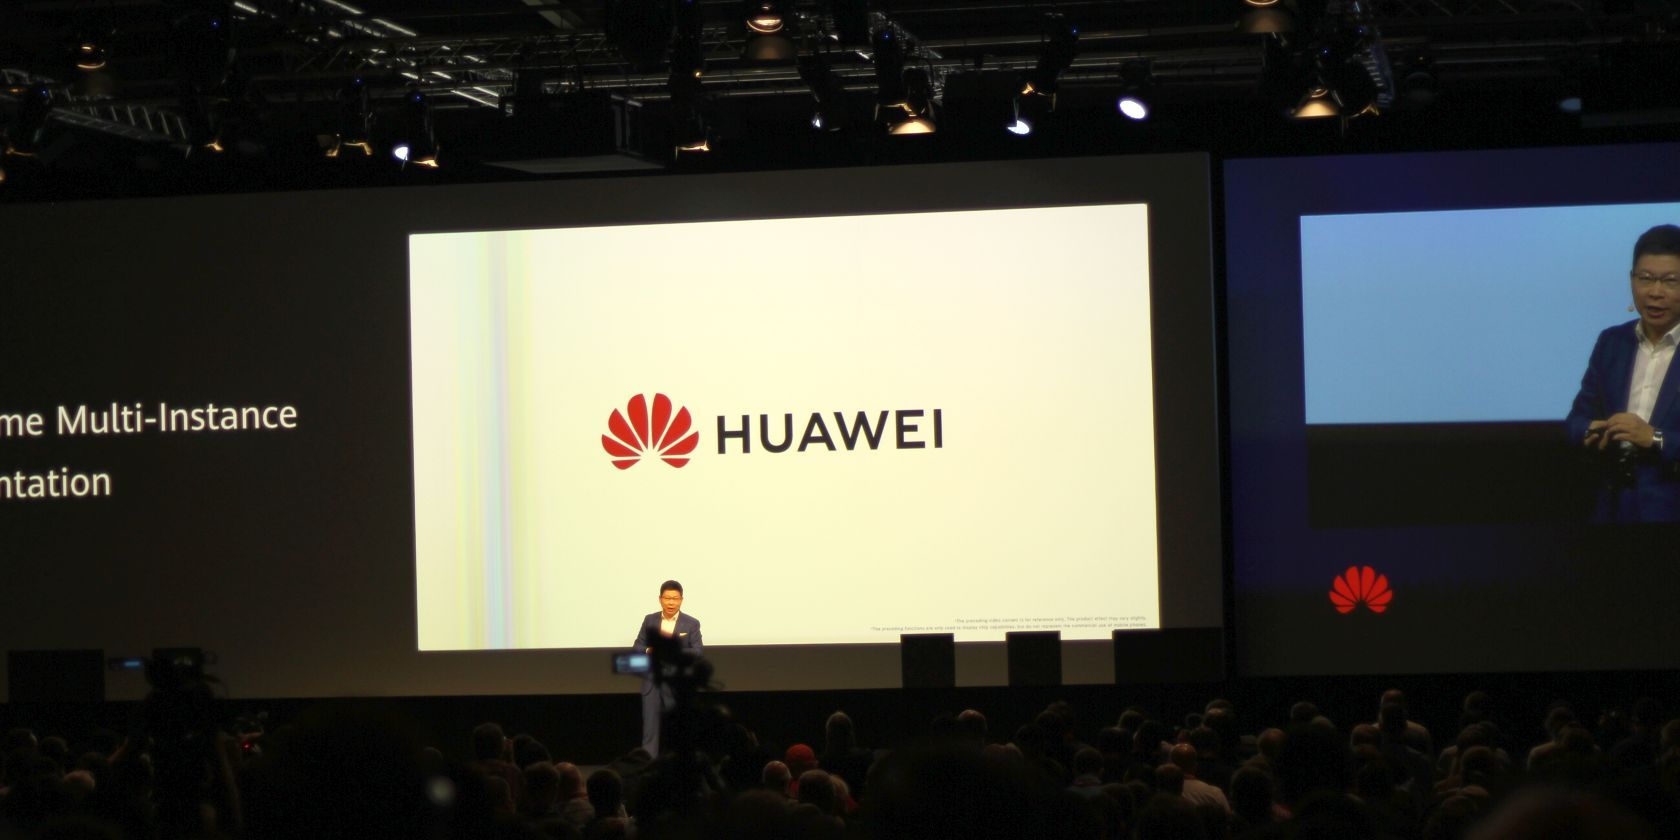 This is an image of Huawei's logo which was displayed at IFA 2019 during a keynote speech